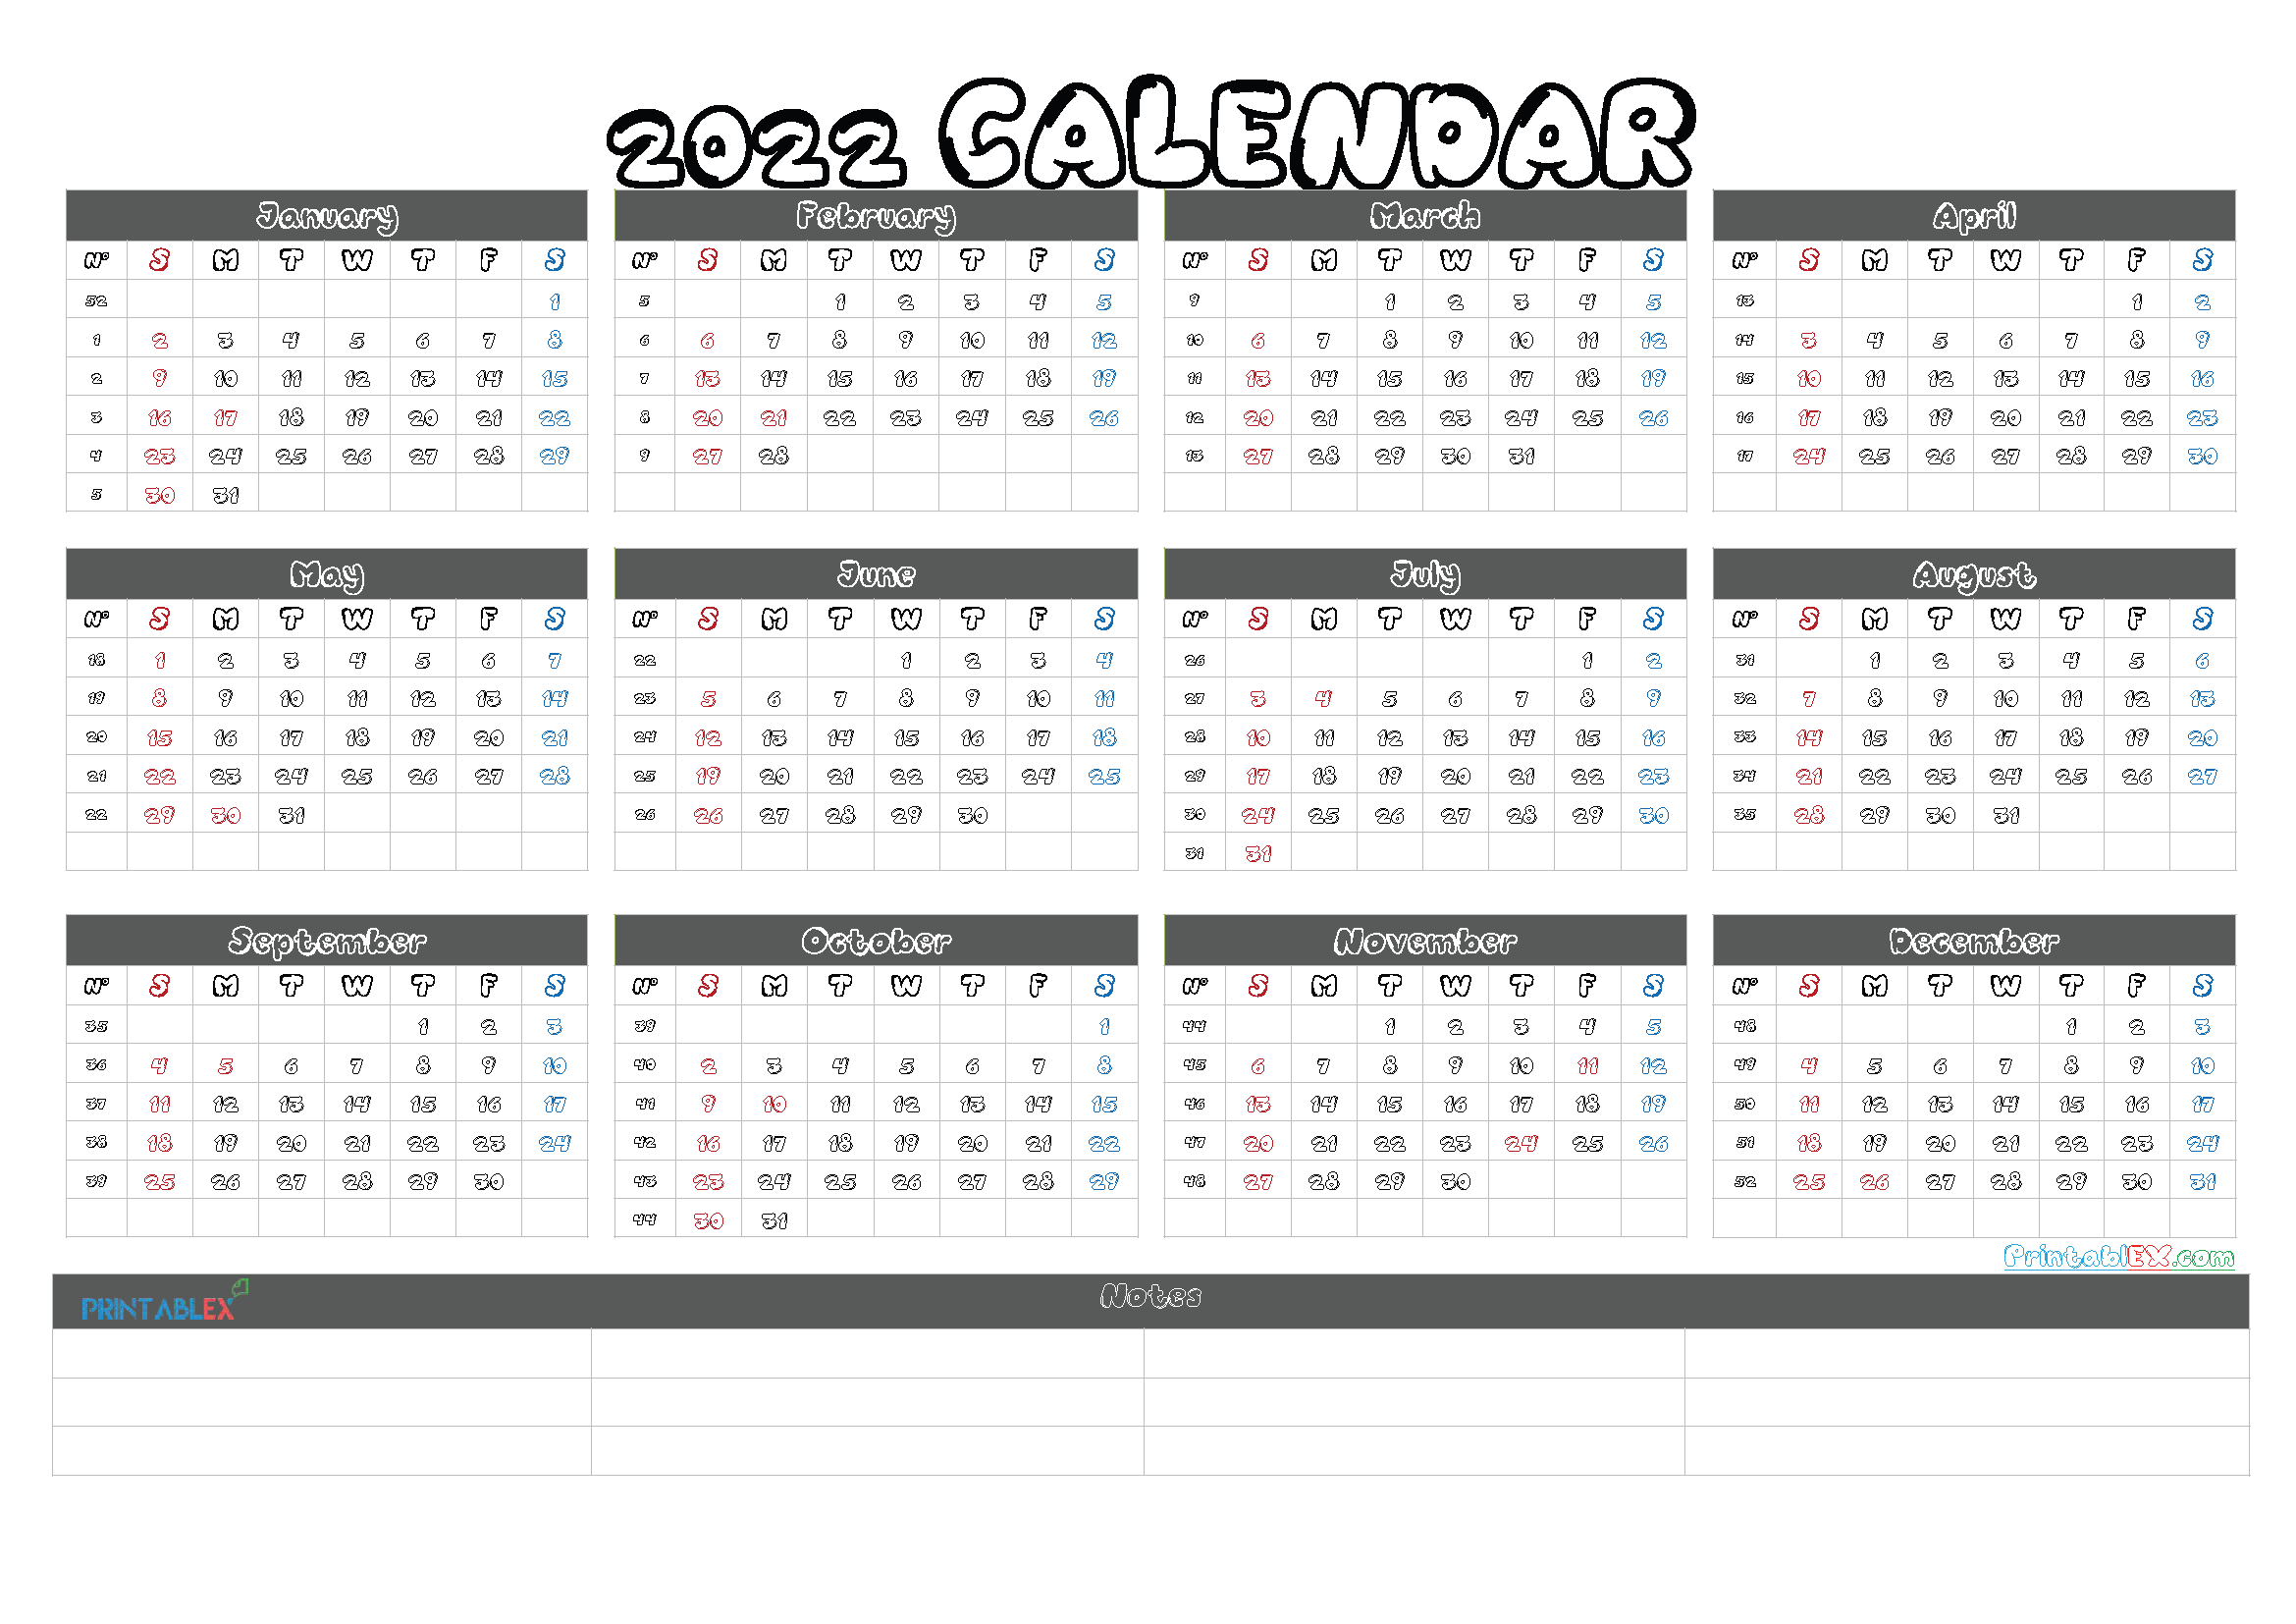 Free Printable 2022 Calendar by Month (Font: horns)